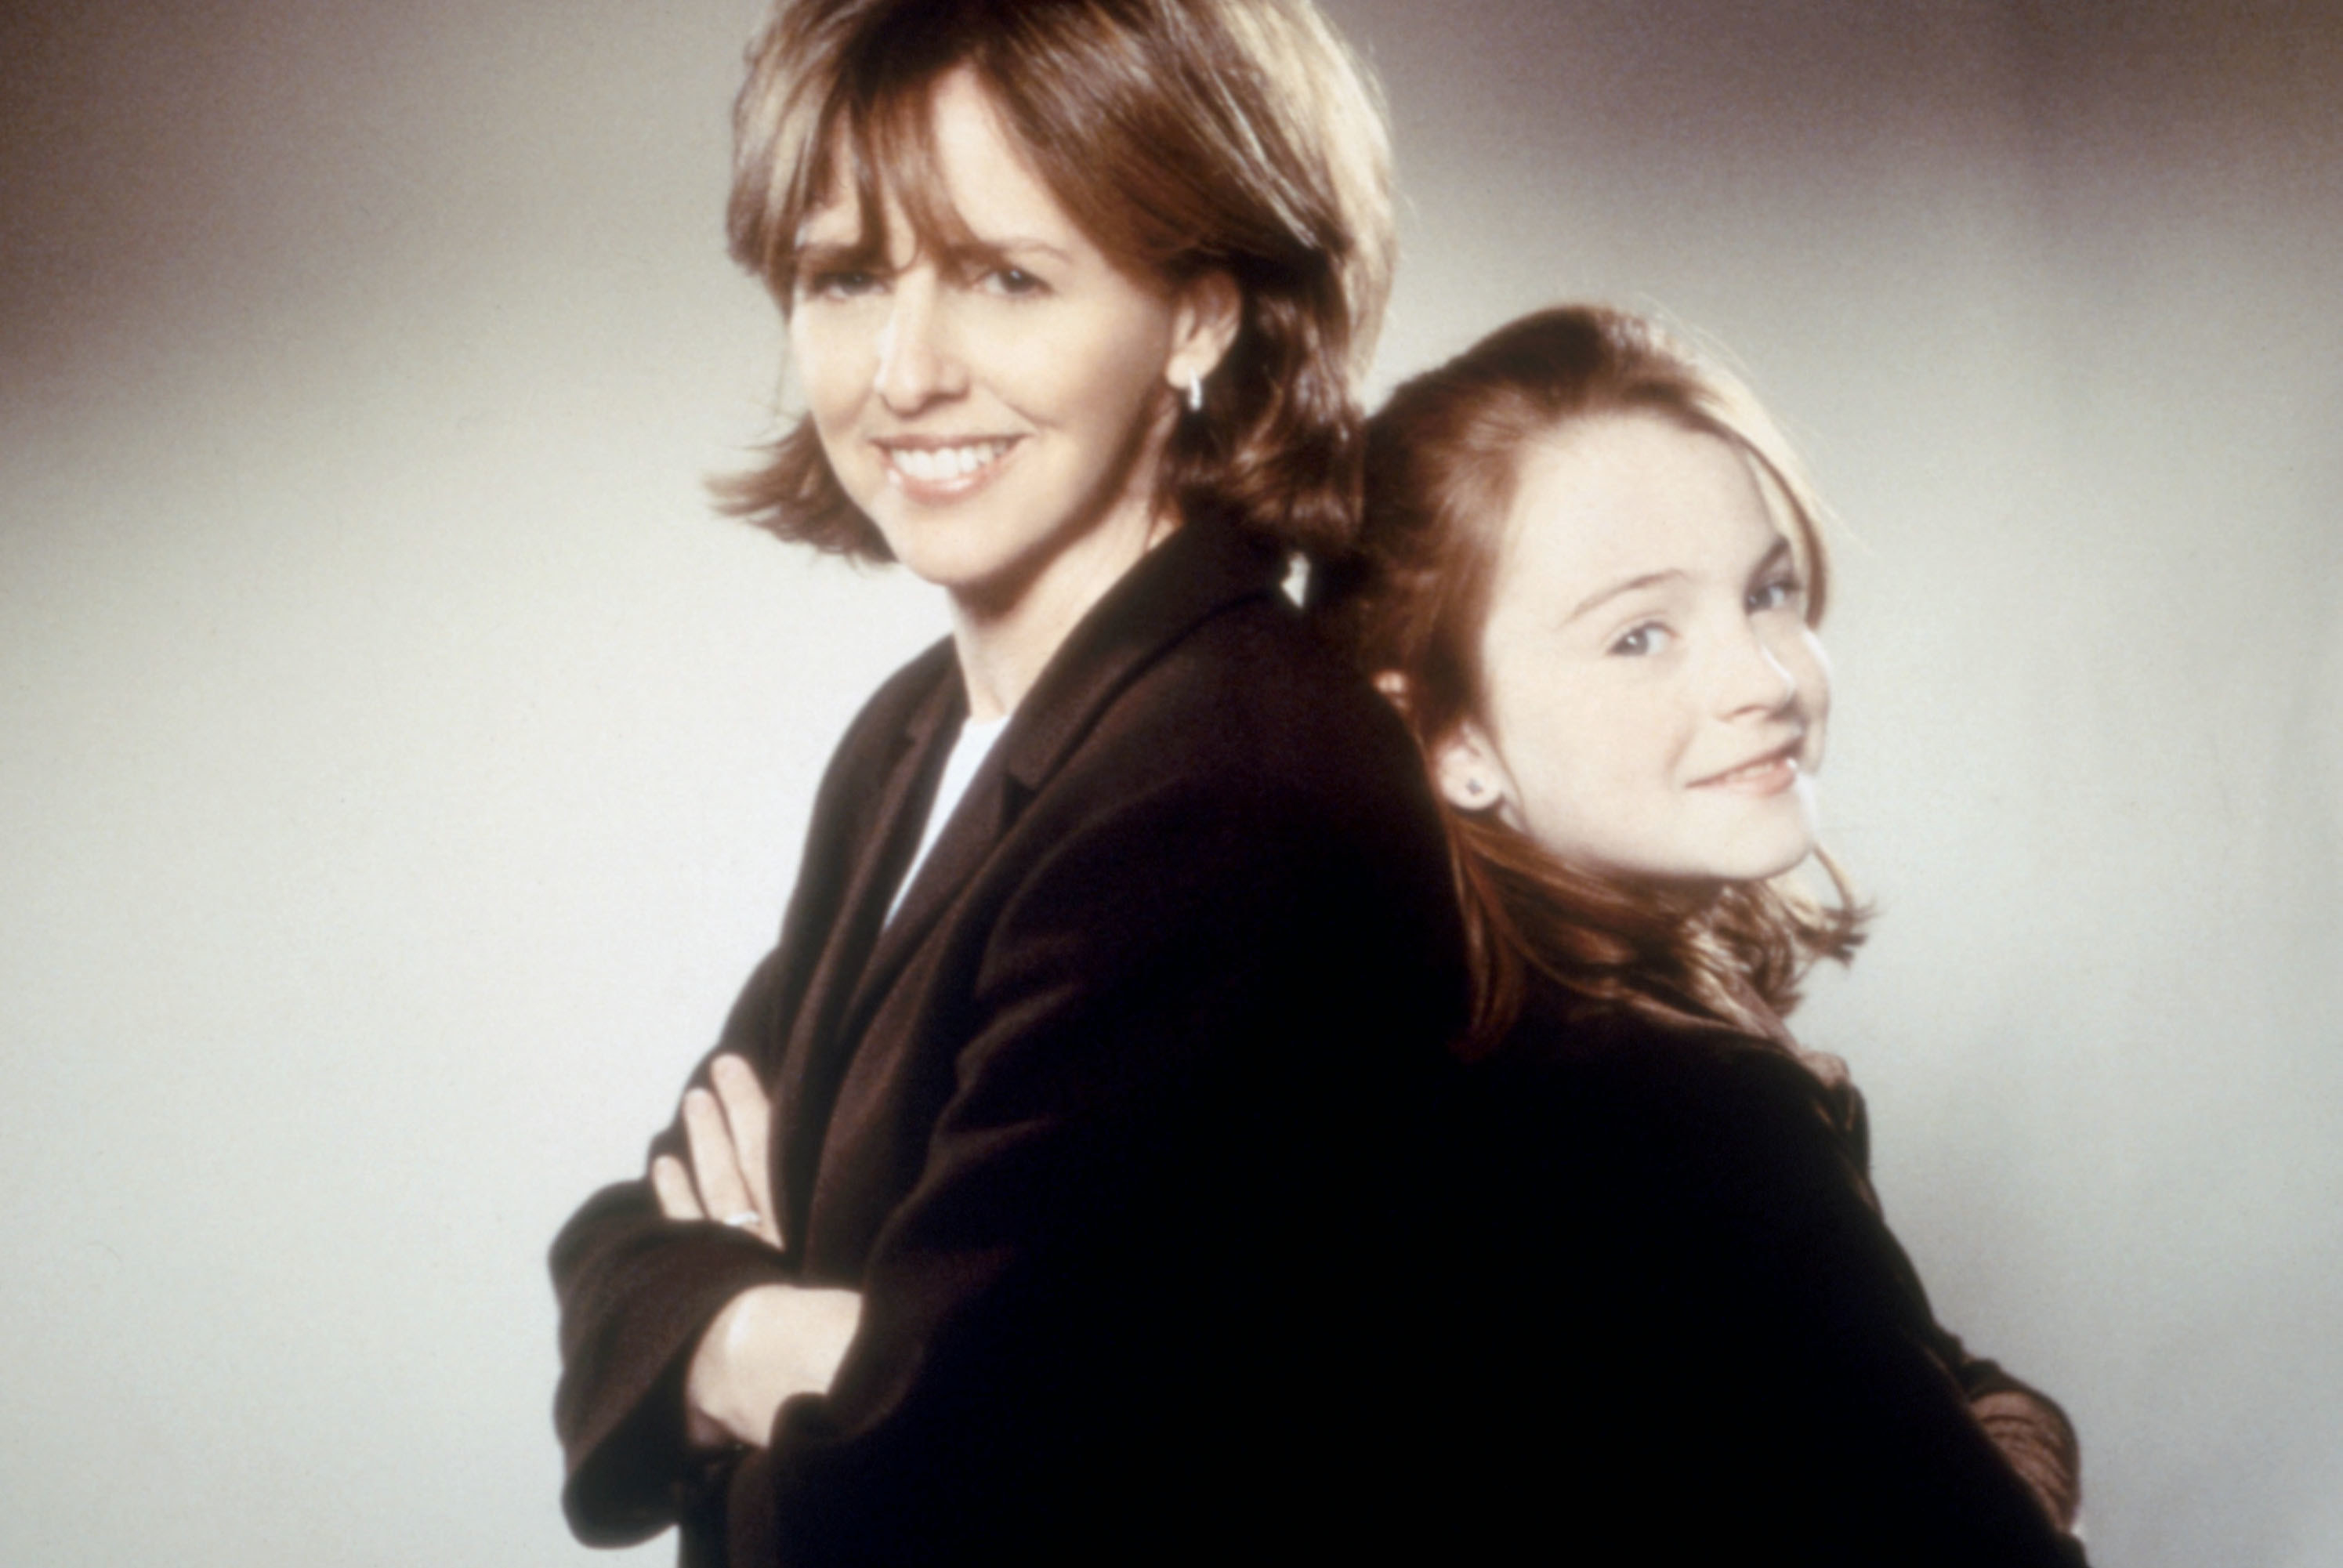 Nancy Meyers and a young Lindsay Lohan circa The Parent Trap post back to back